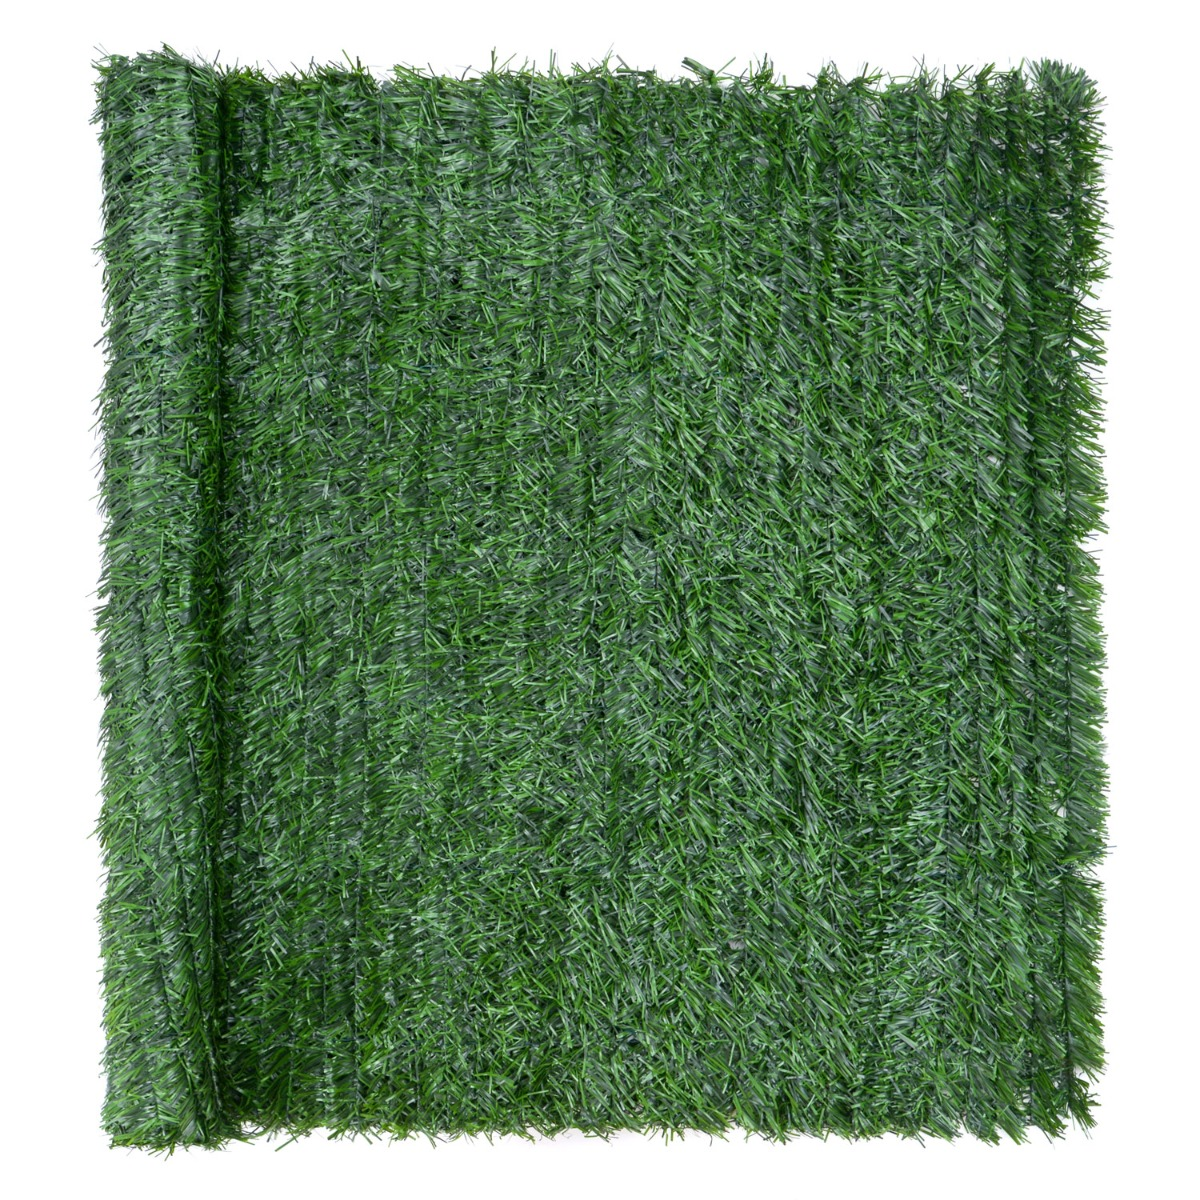 Image of Conifer Artificial Hedge Rolls (4 Pack)